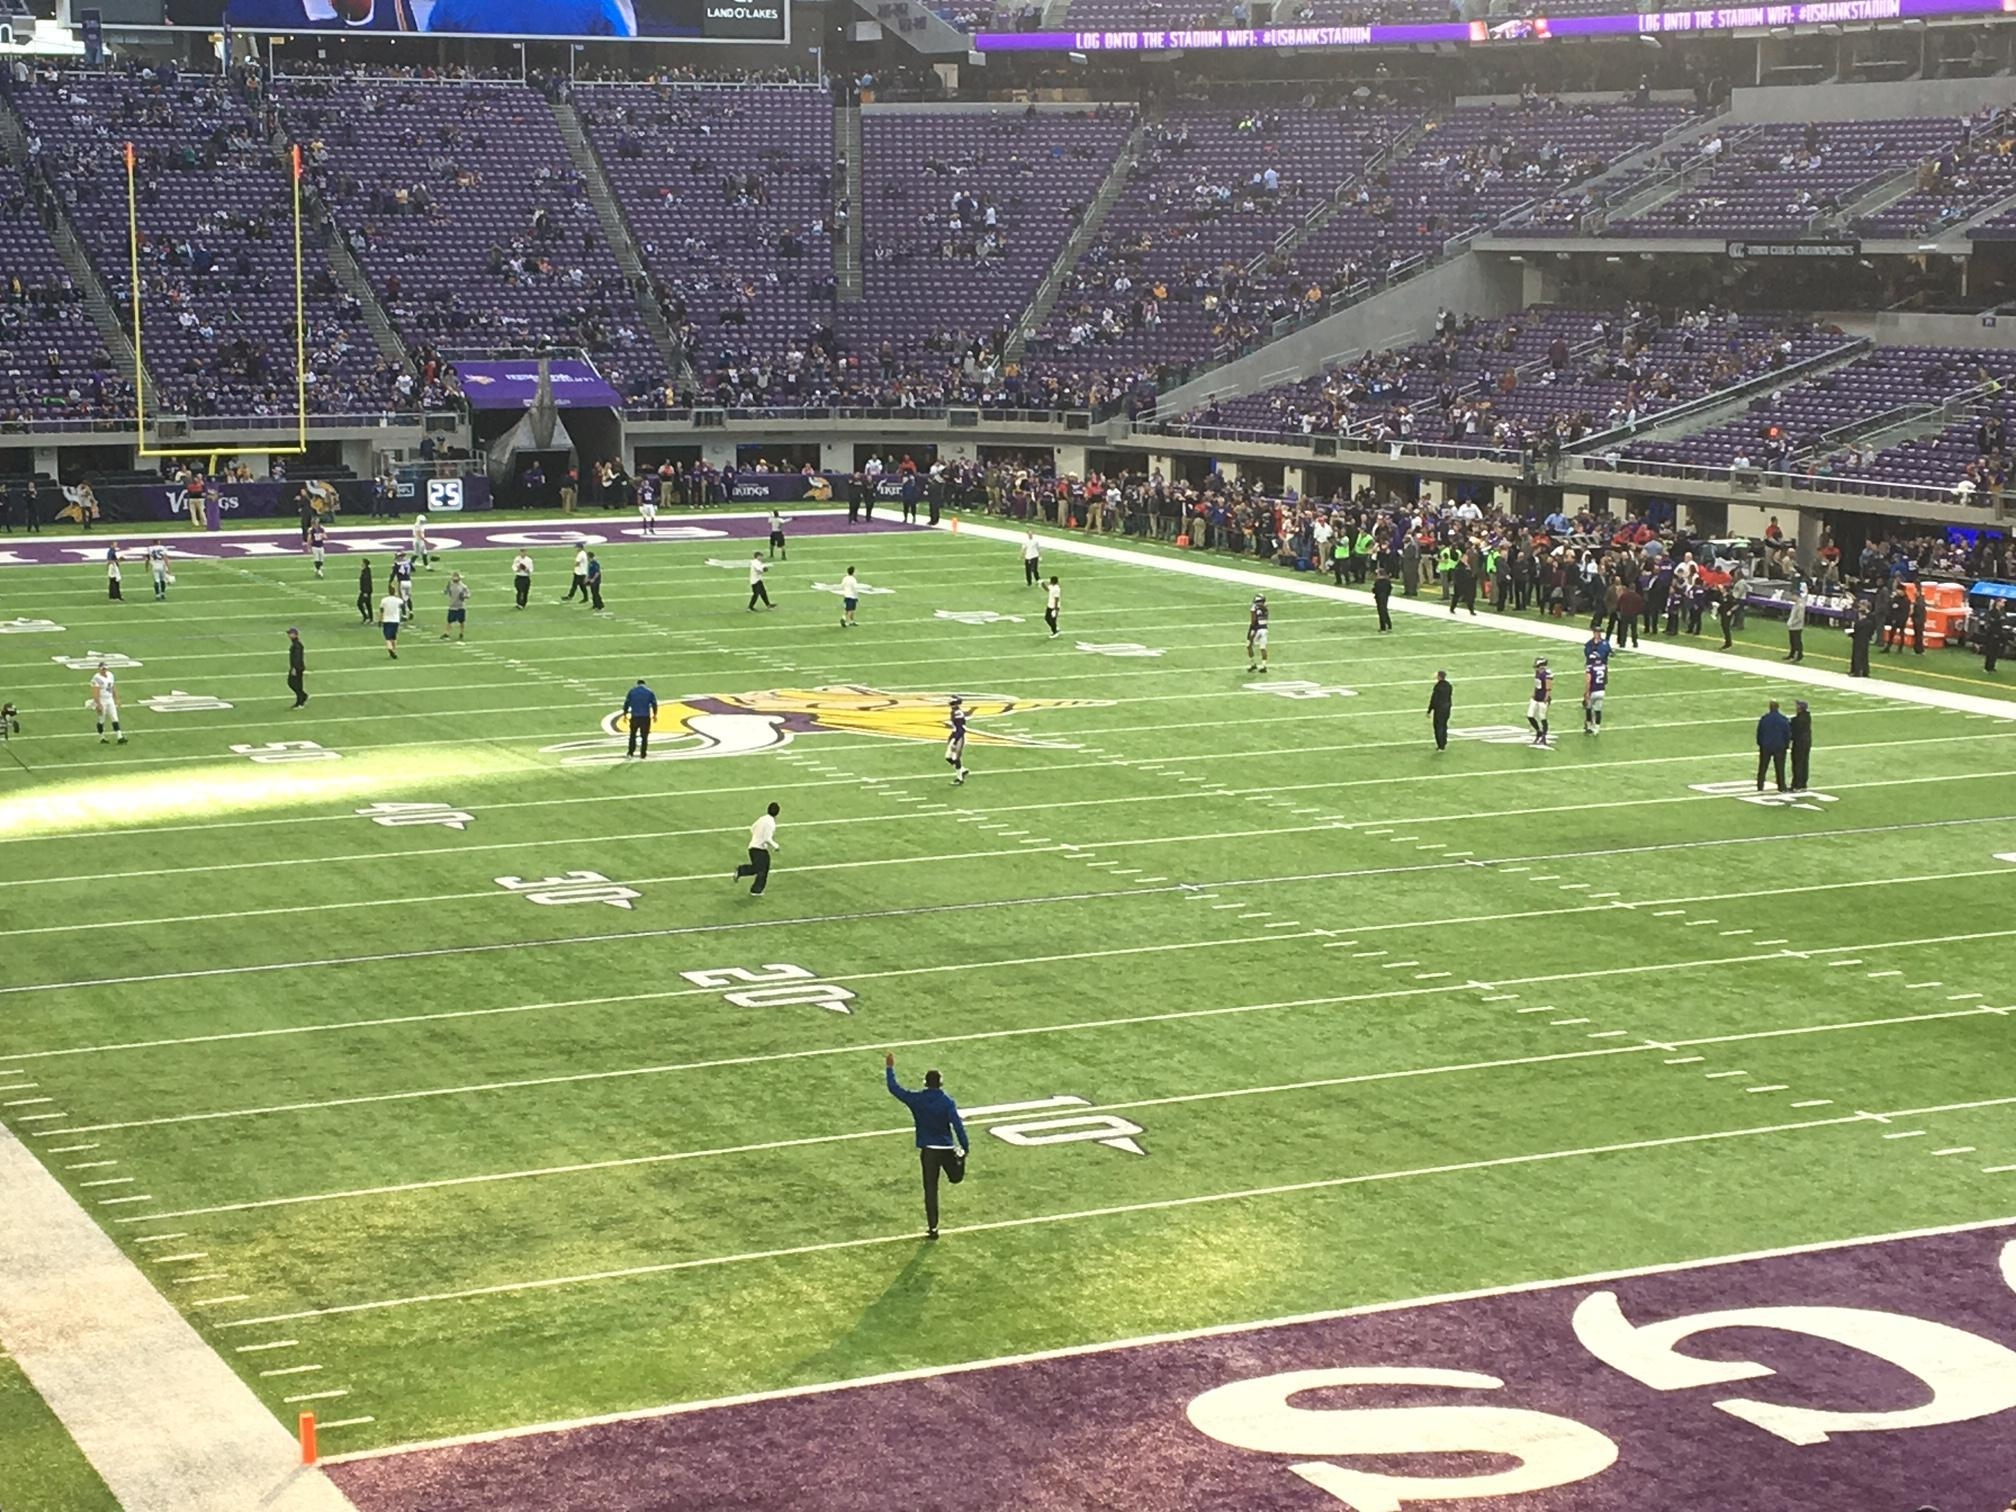 U.S. Bank Stadium Section 143 Row 22 Seat 21